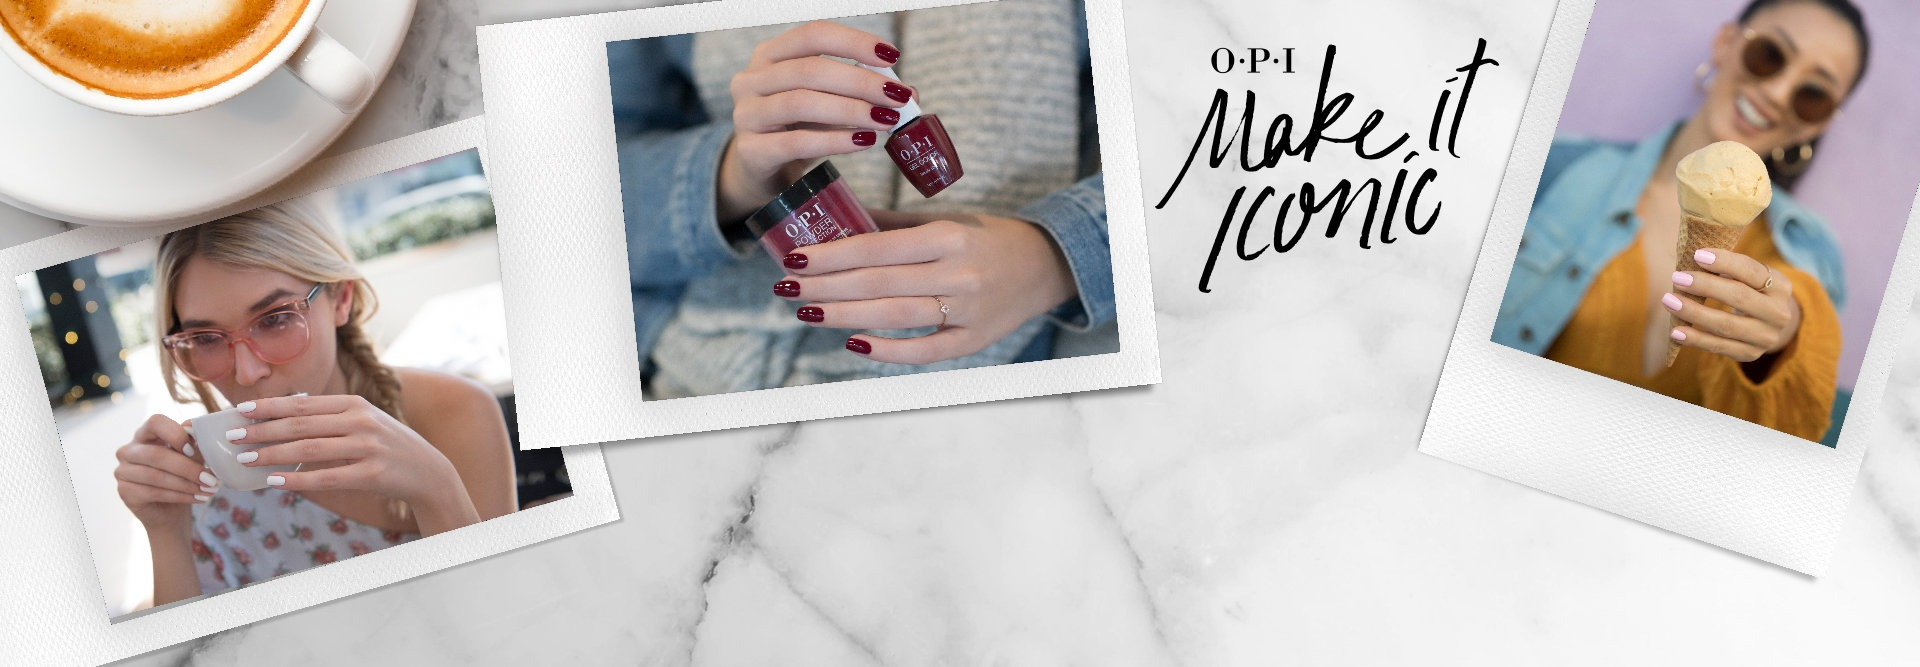 OPI Make It Iconic collezione